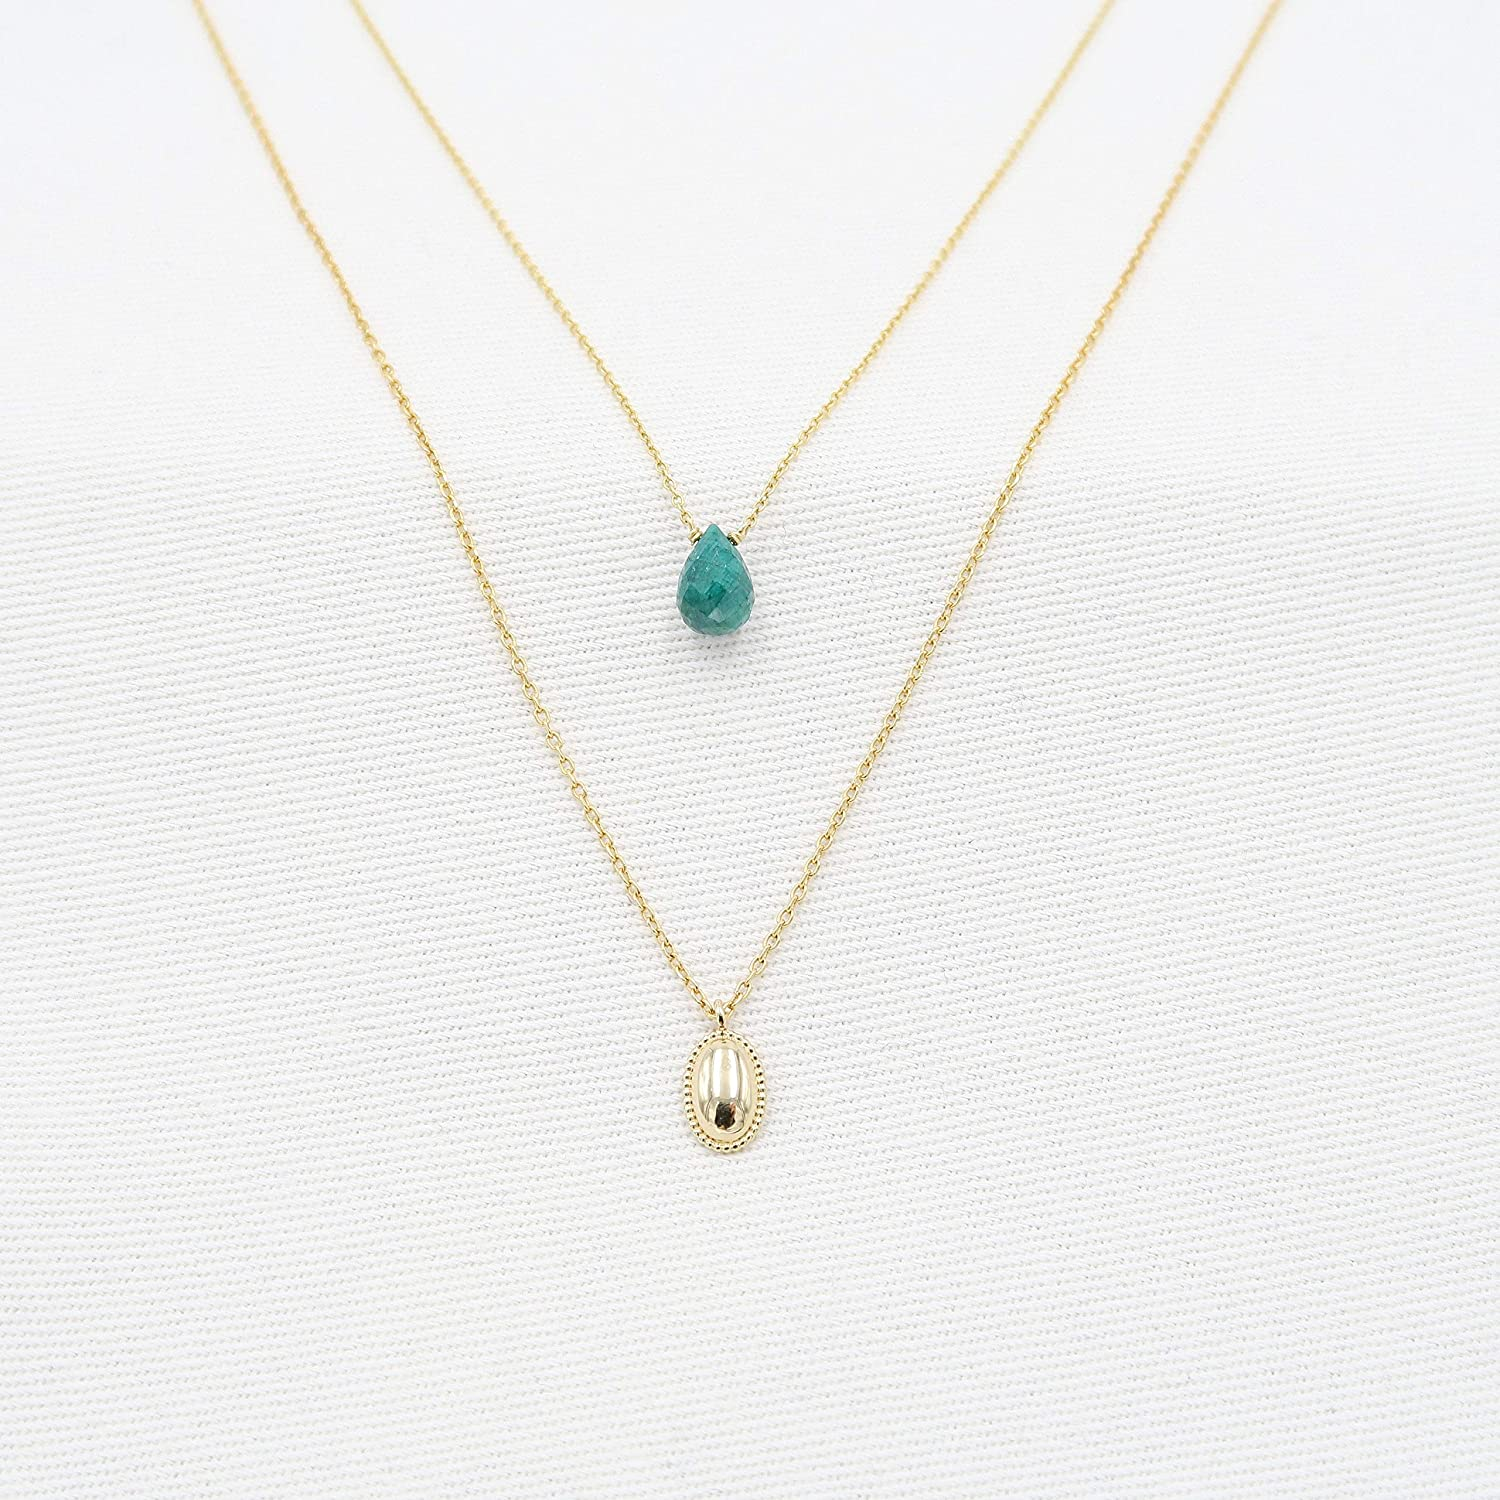 Emerald pendant oval gold disc OFFicial mail order - 14K Pear Gold Yellow Genuine service